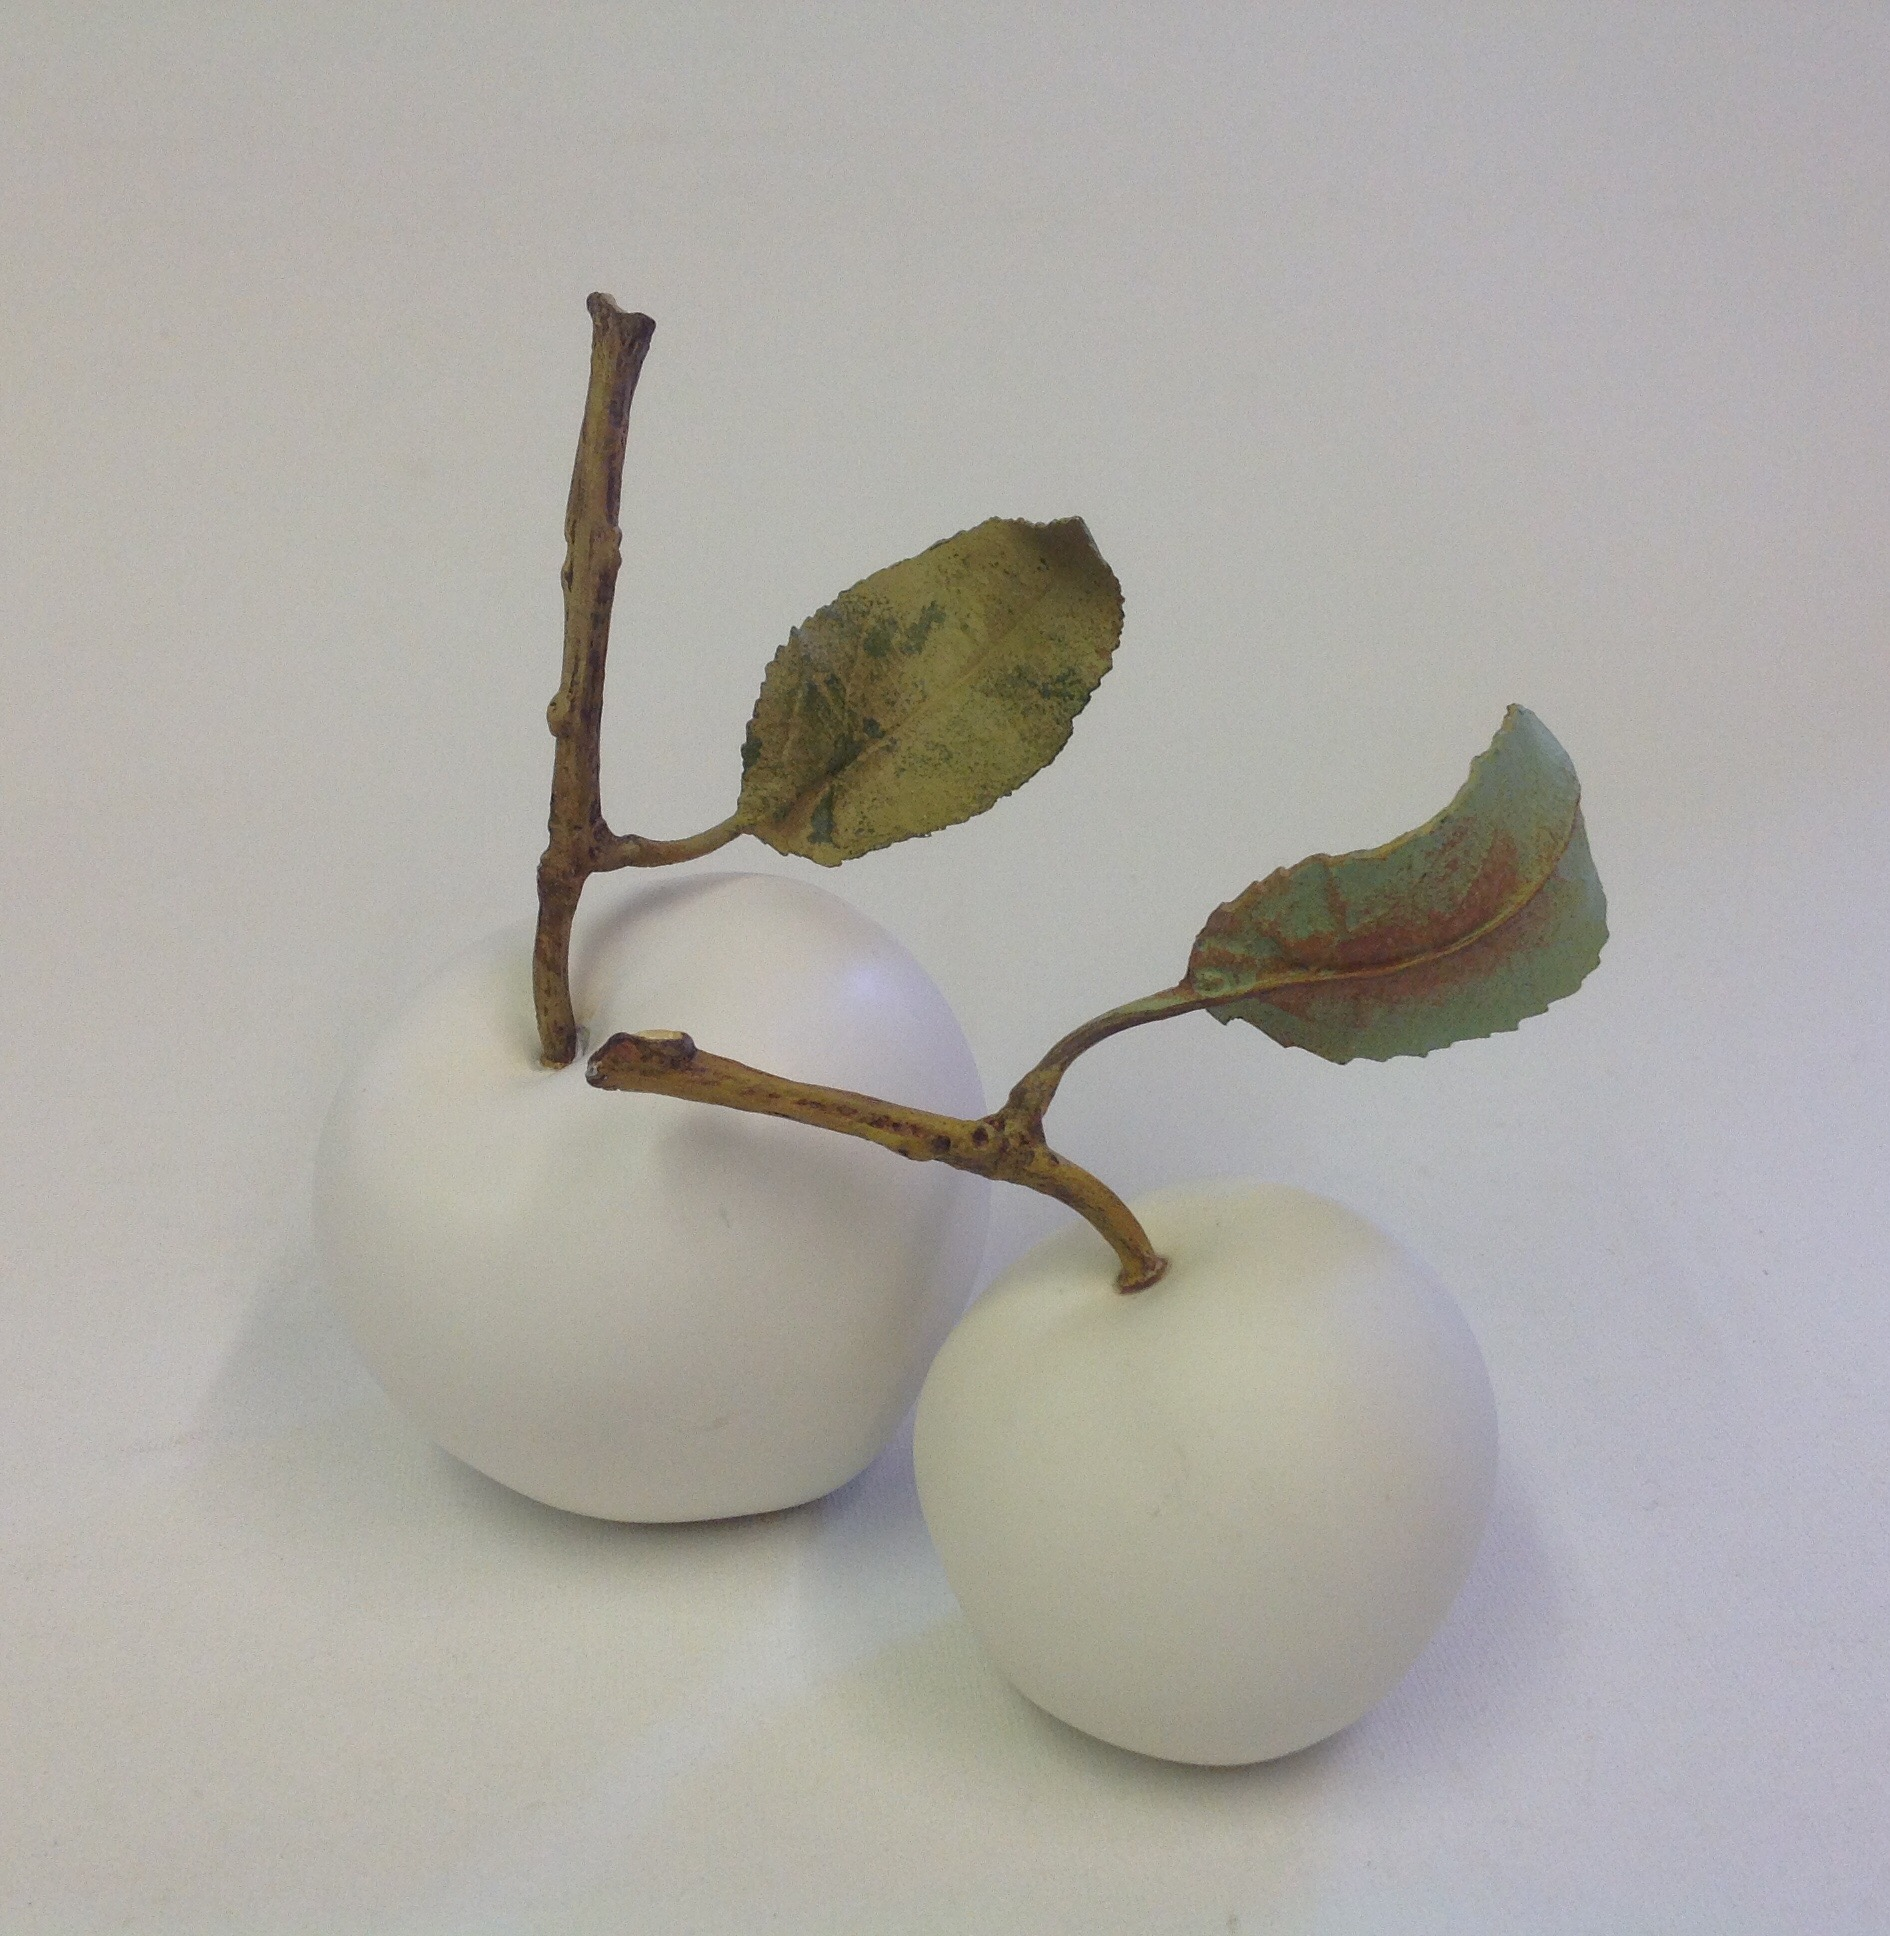 Windfall Apple with small twig & one leaf